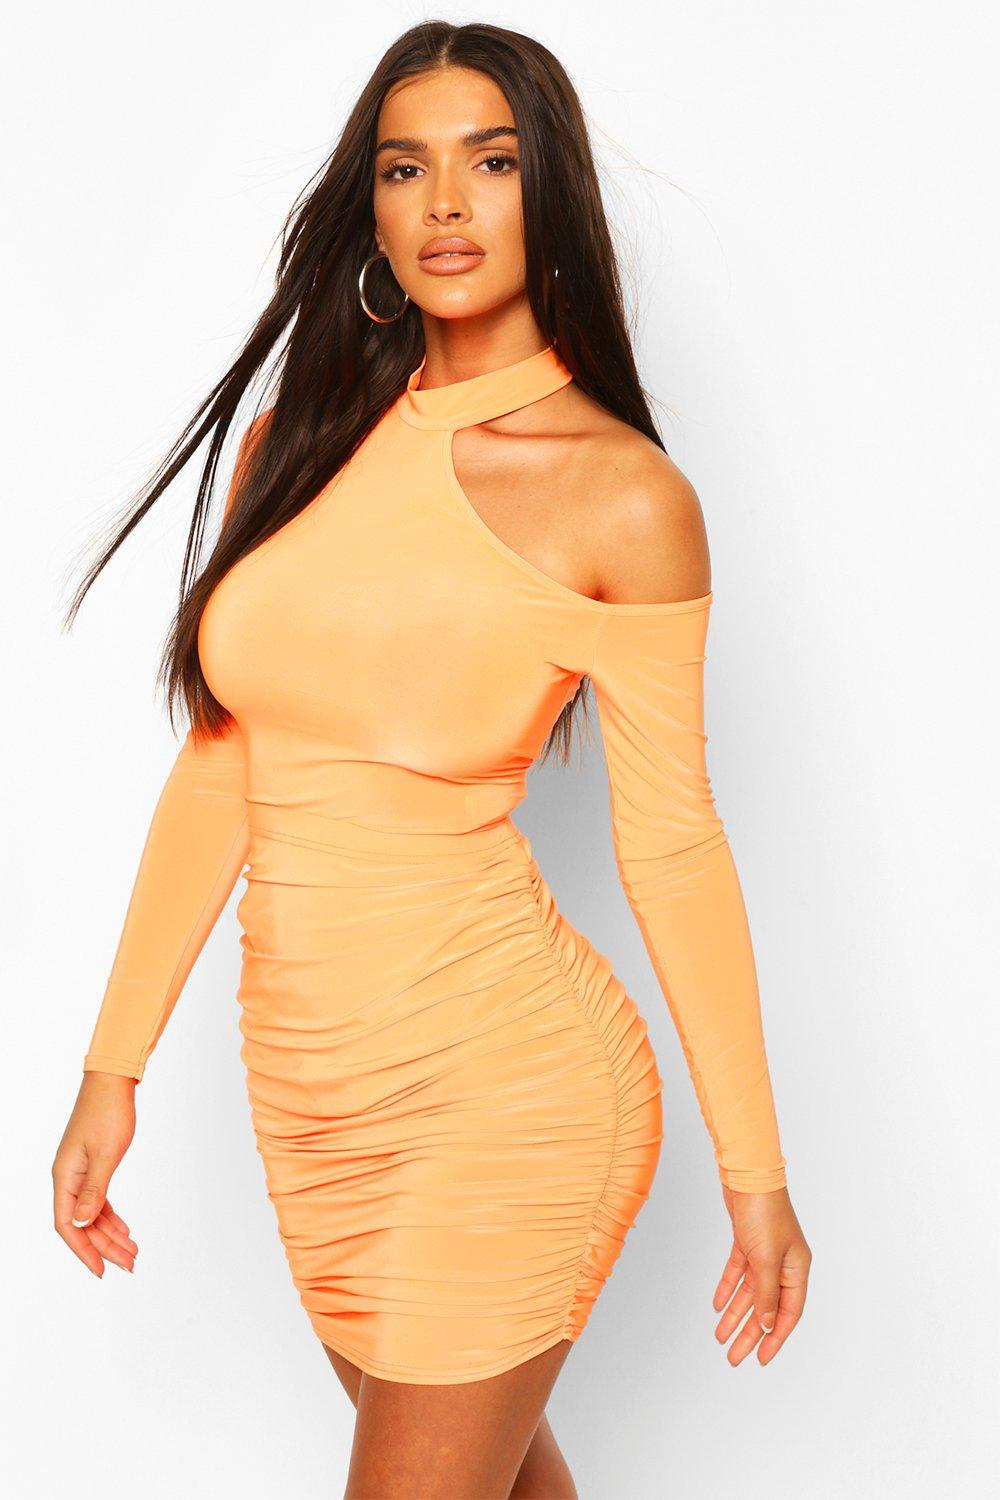 boohoo Womens Cut Out Neon Body Top - Orange - 8, Orange